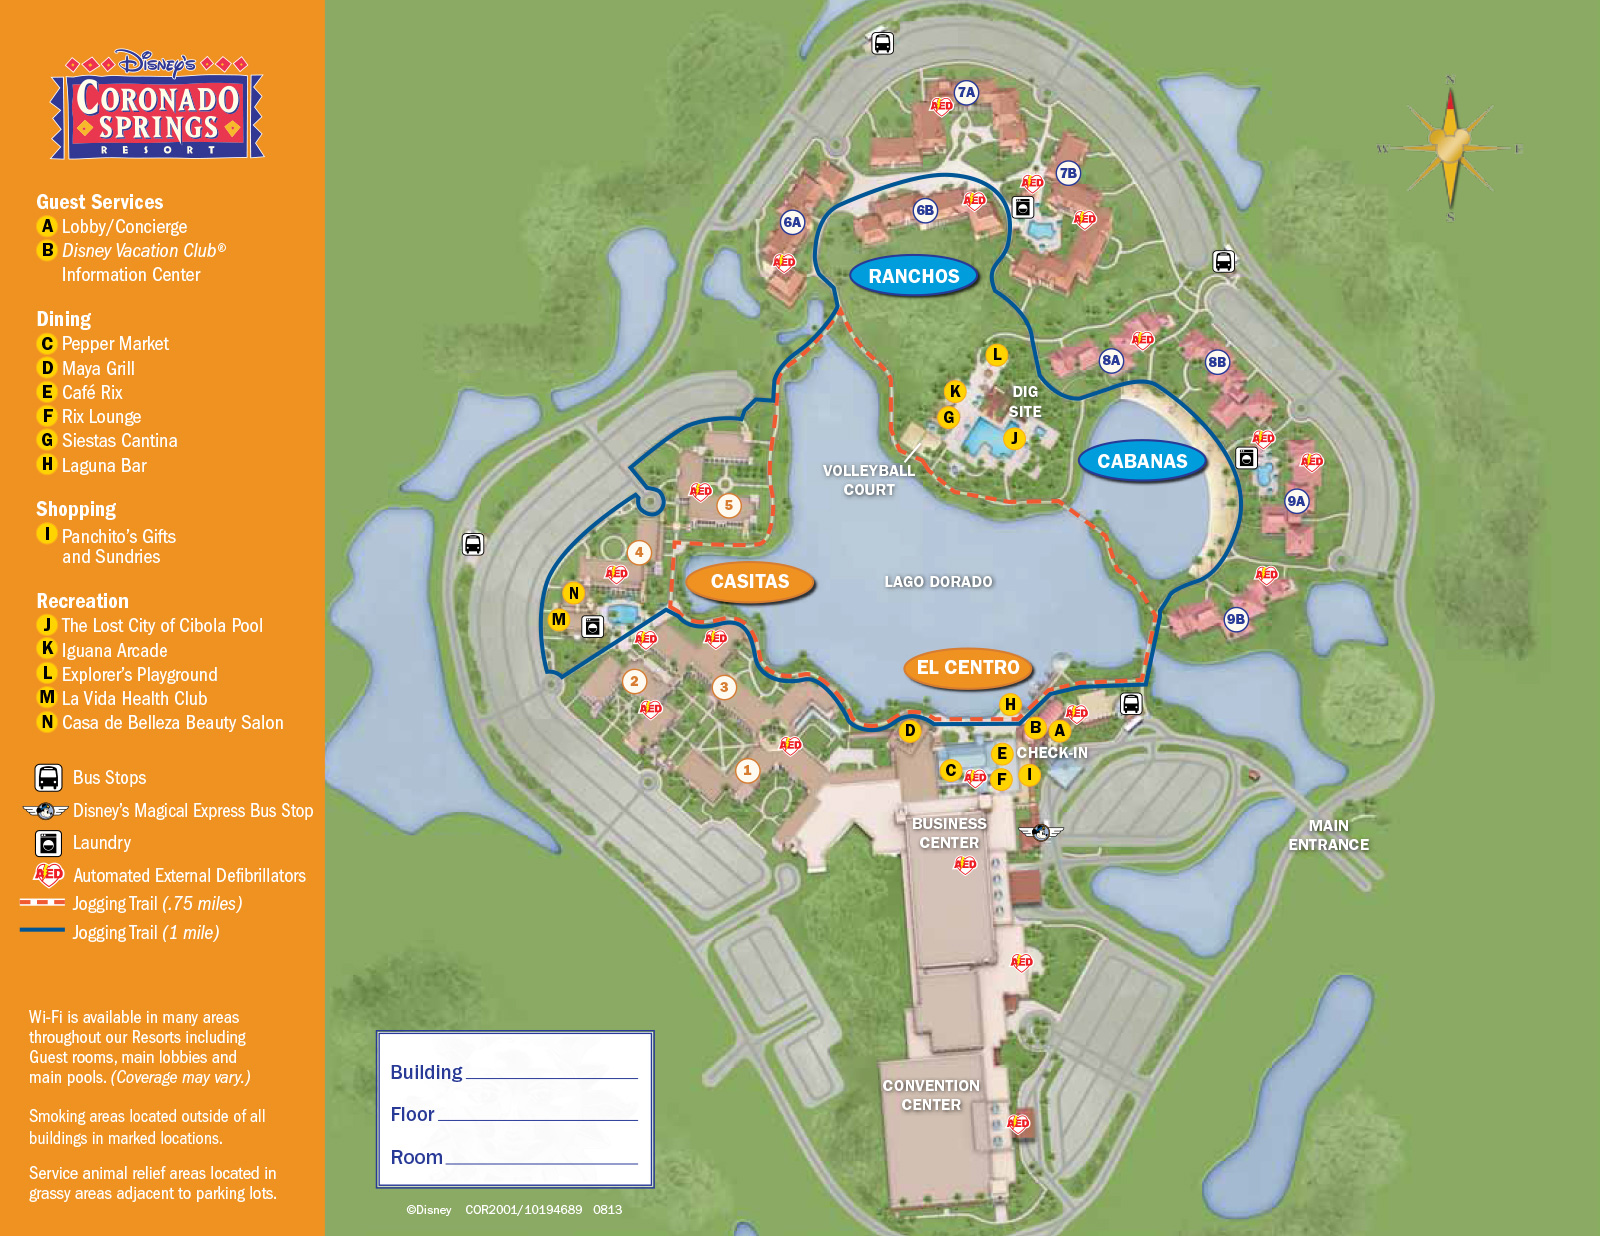 Resort Maps - Magical DIStractions on